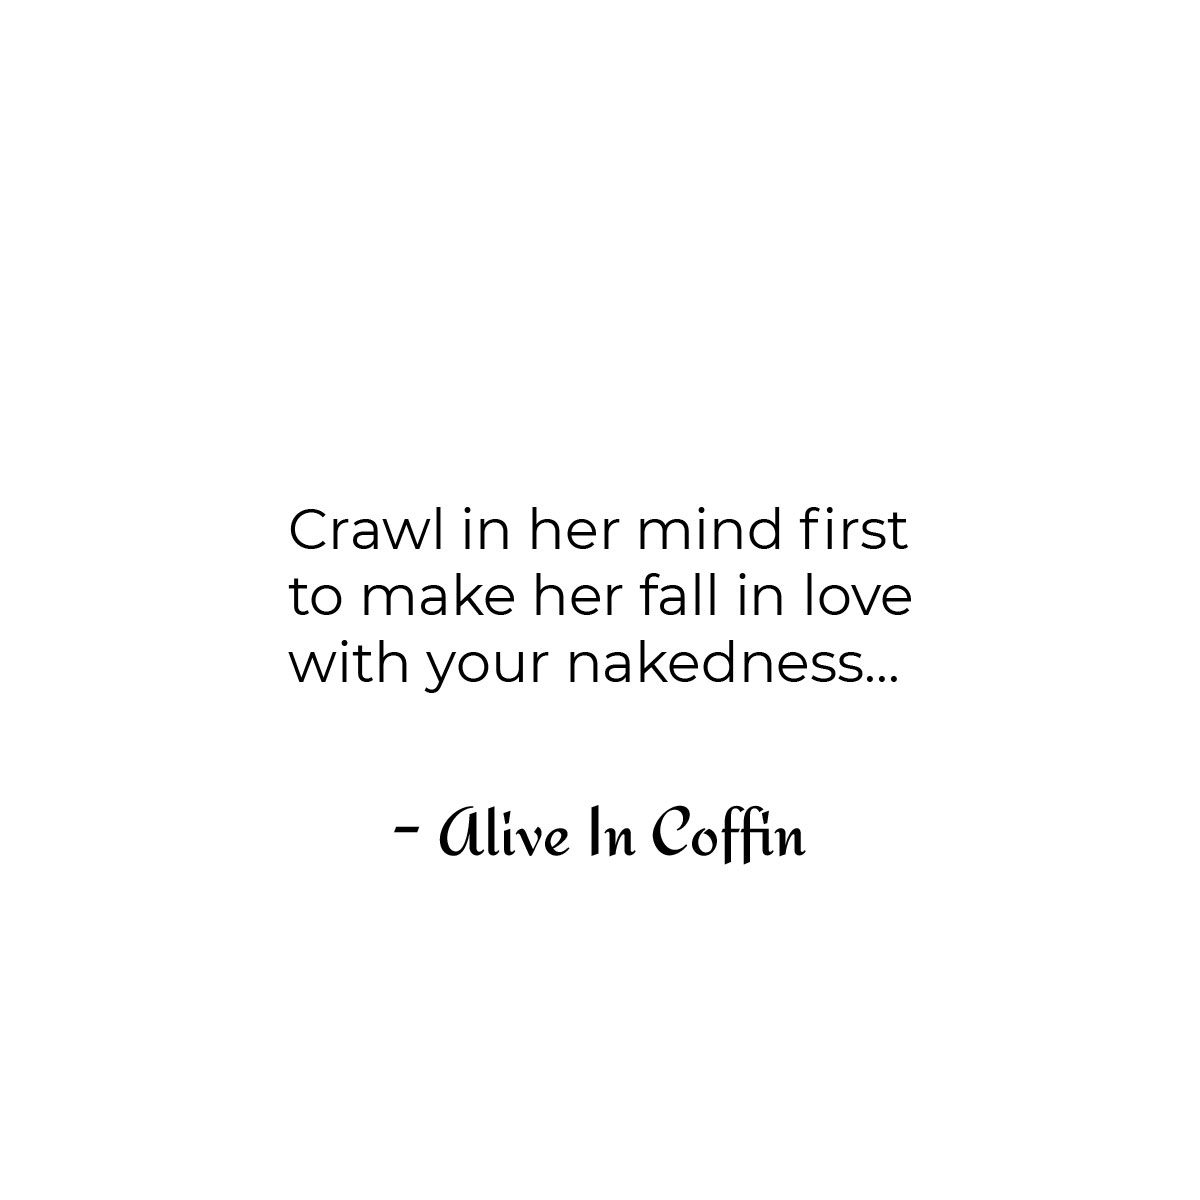 A short philosophy poem upon how to make her fall in love.